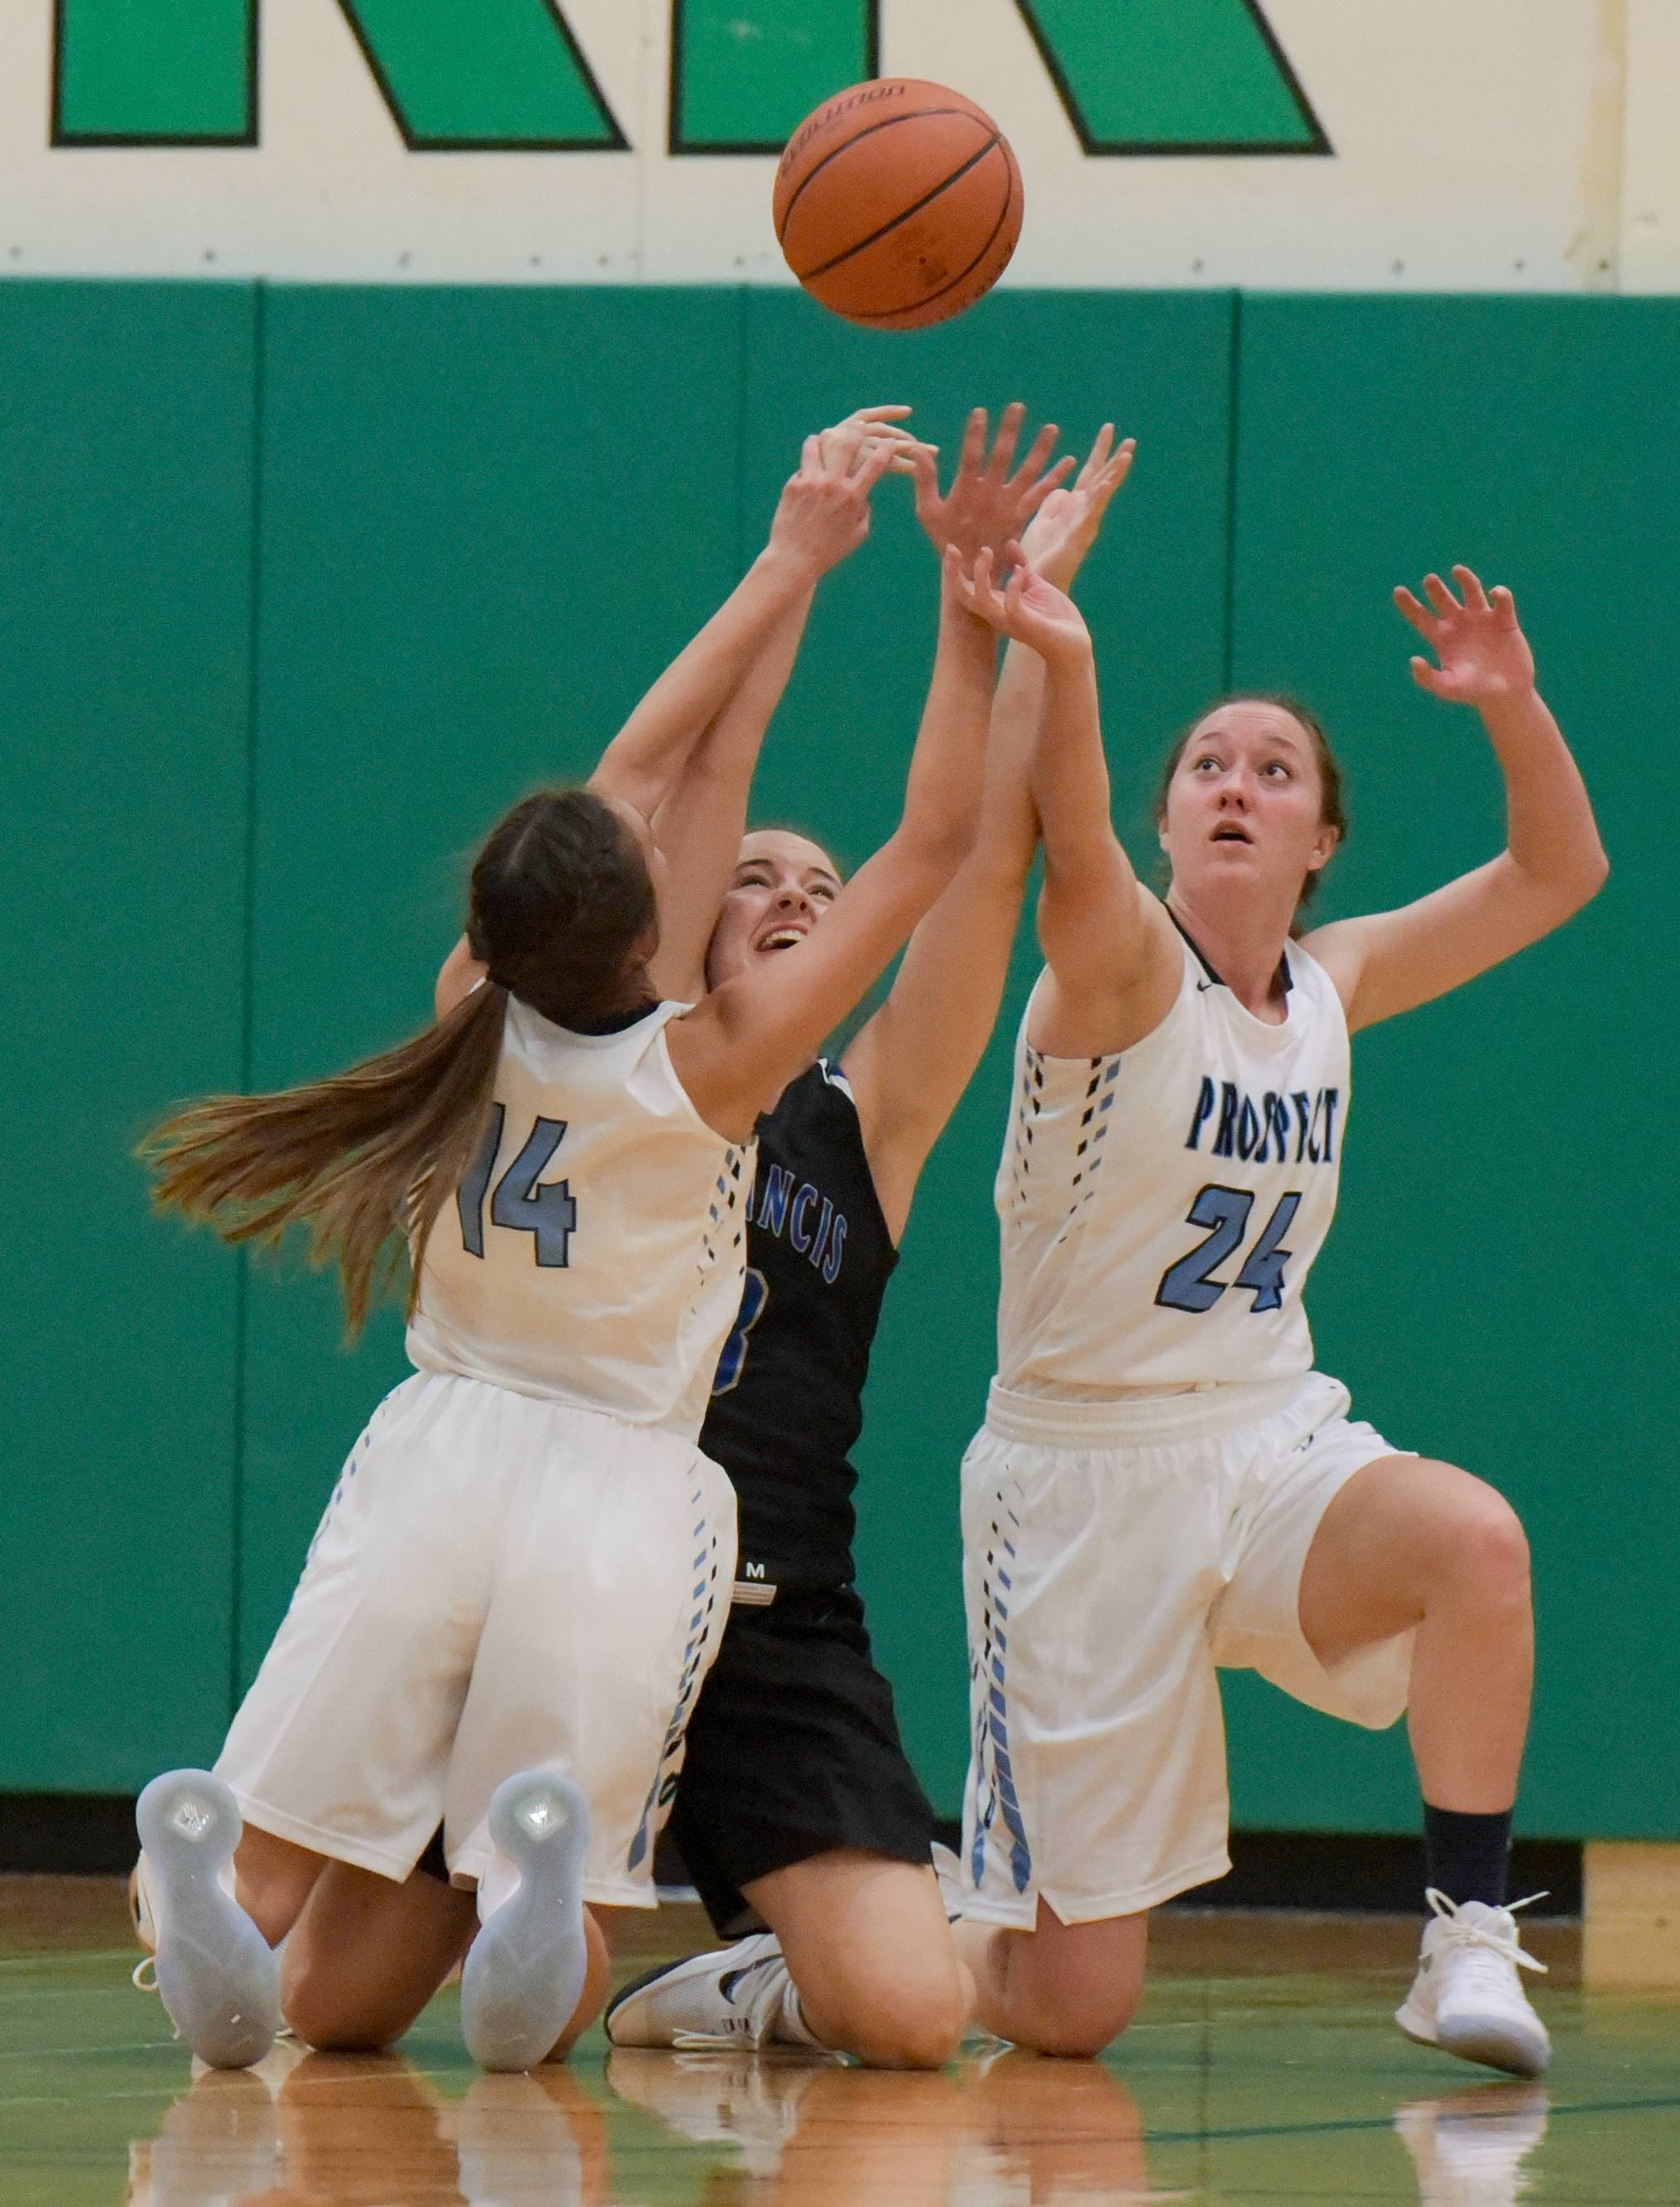 Prospect's Stephanie Kowalczyk and Ashley Adams struggle for control of the loose ball with St. Francis' Bella Burke girls basketball at York tournament on November 13, 2017.